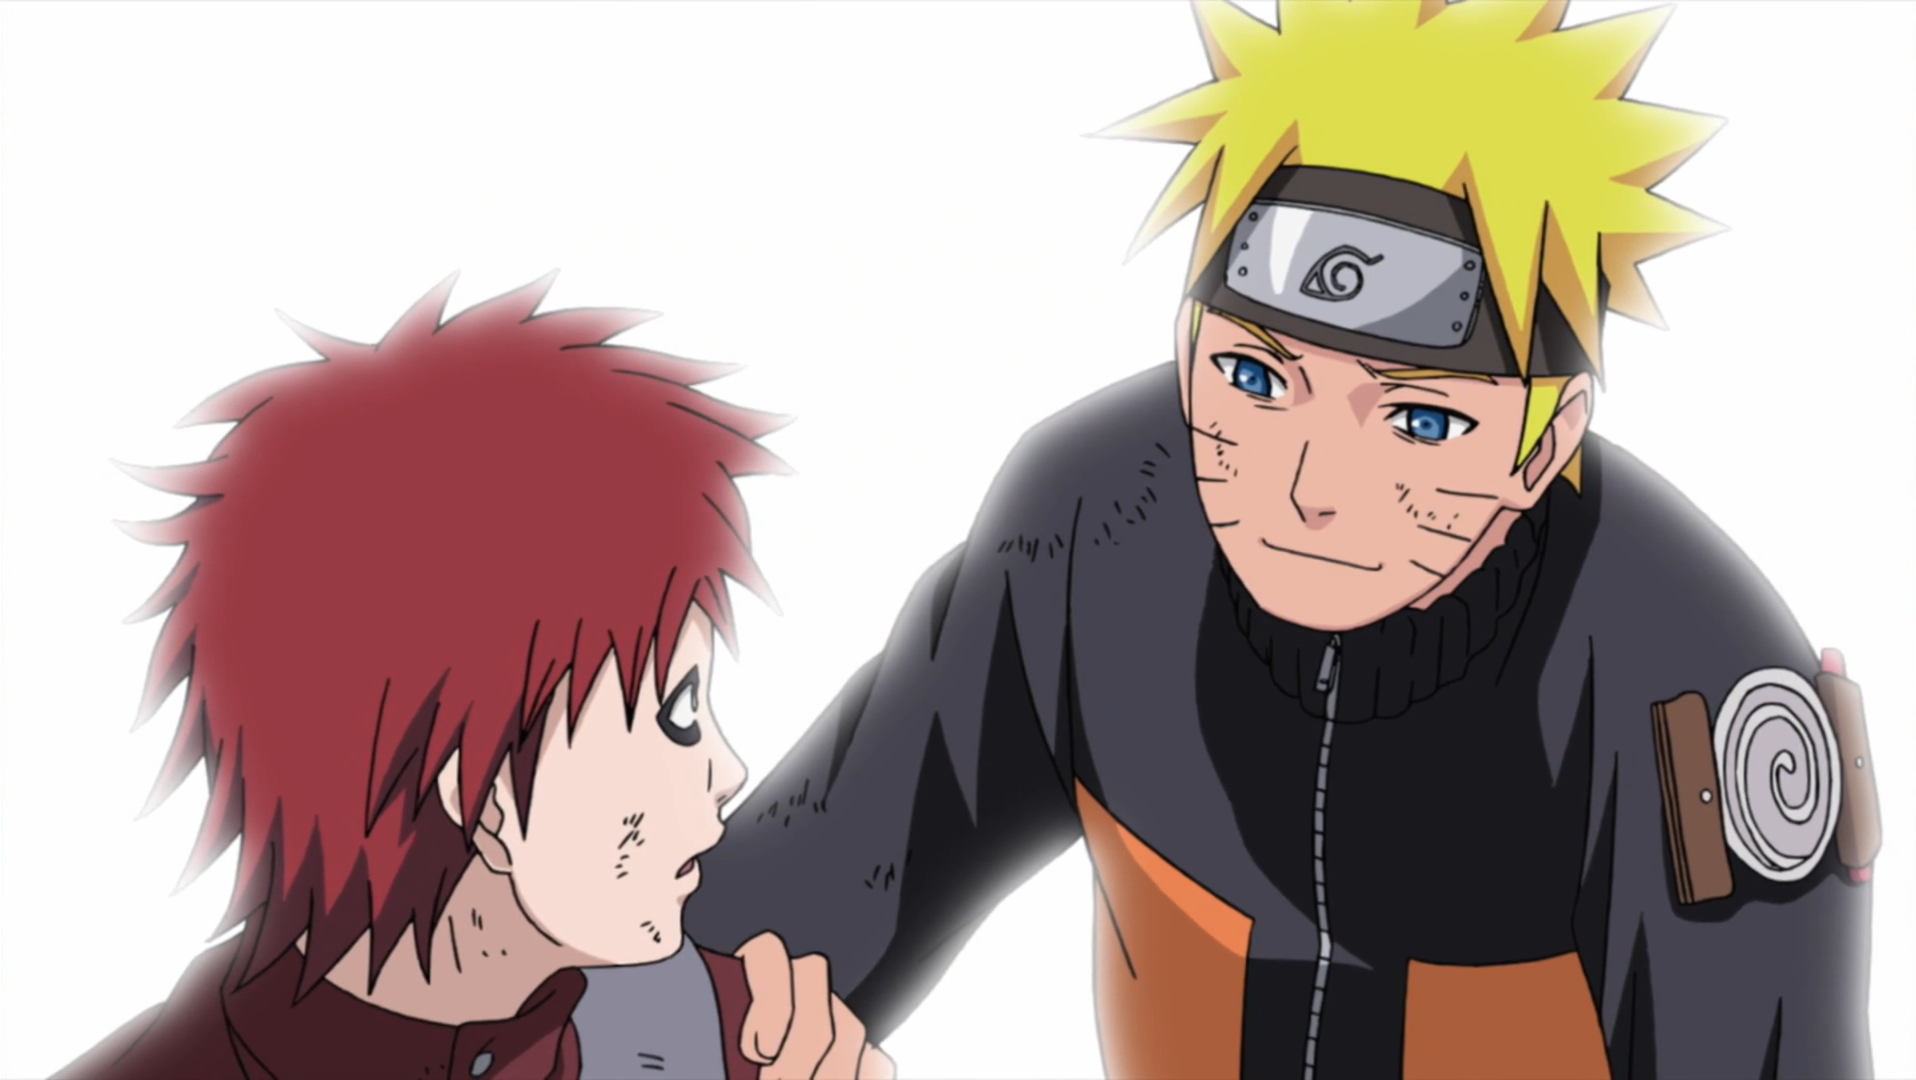 Naruto shippuden naruto and nine tails become friends before dating